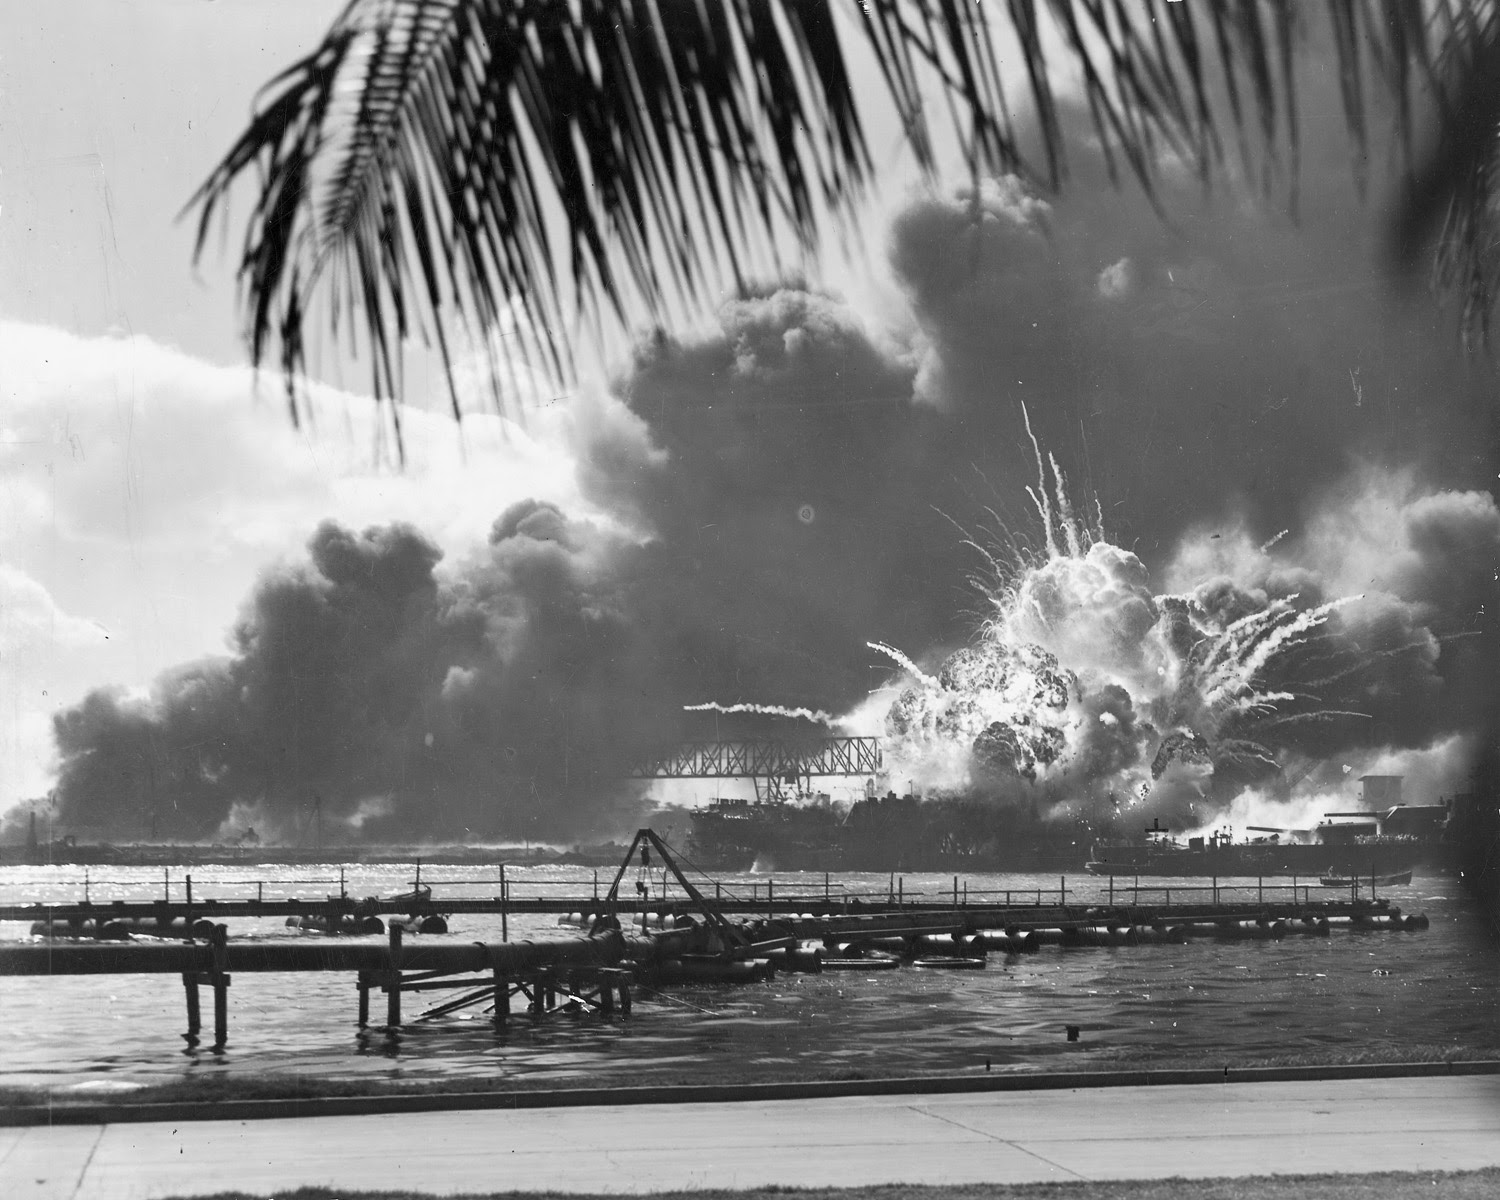 """The image """"http://www.archives.gov/publications/prologue/2004/winter/images/pearl-harbor.jpg"""" cannot be displayed, because it contains errors."""